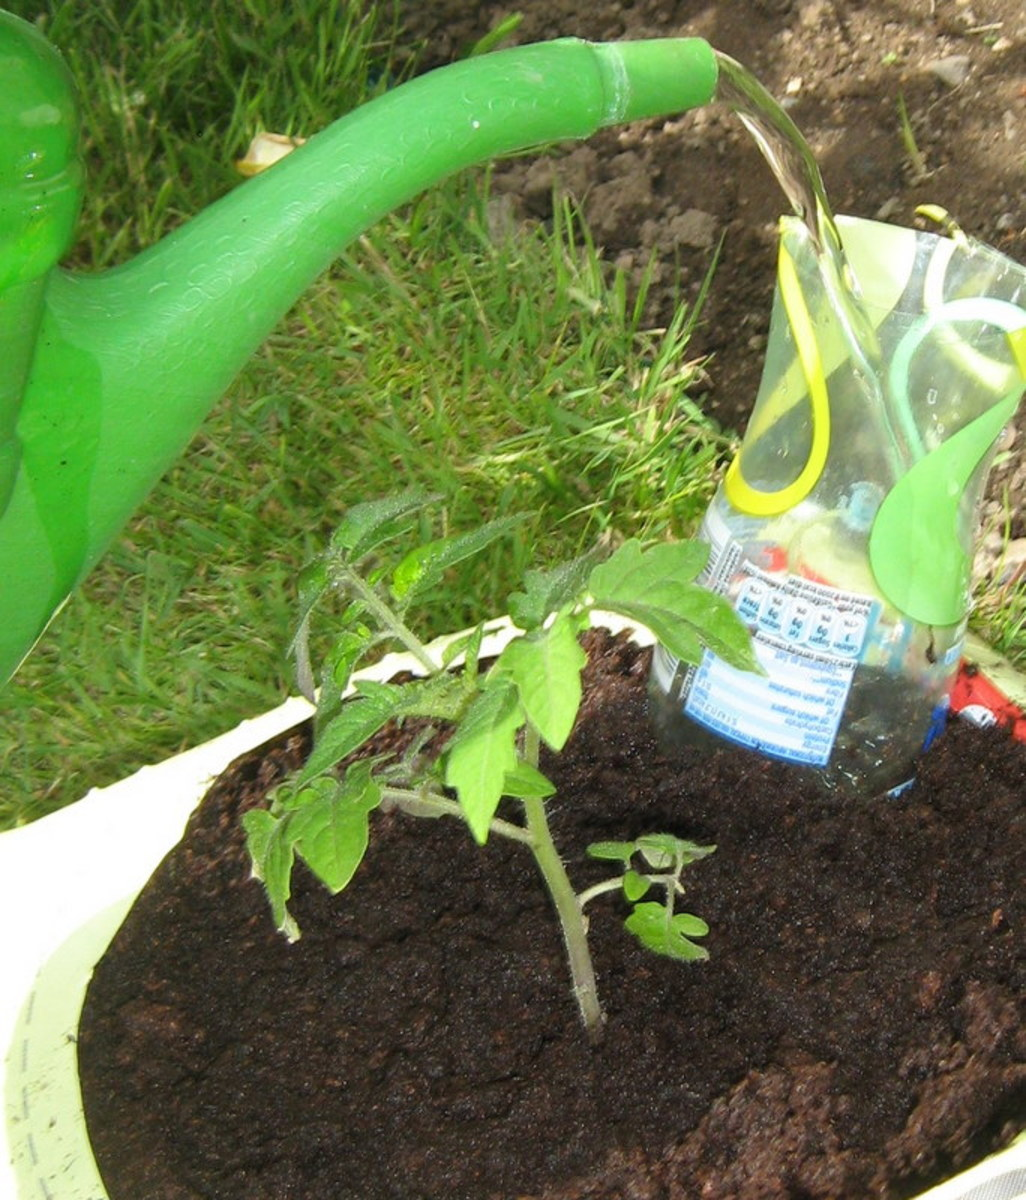 How often should I water my tomato plants?